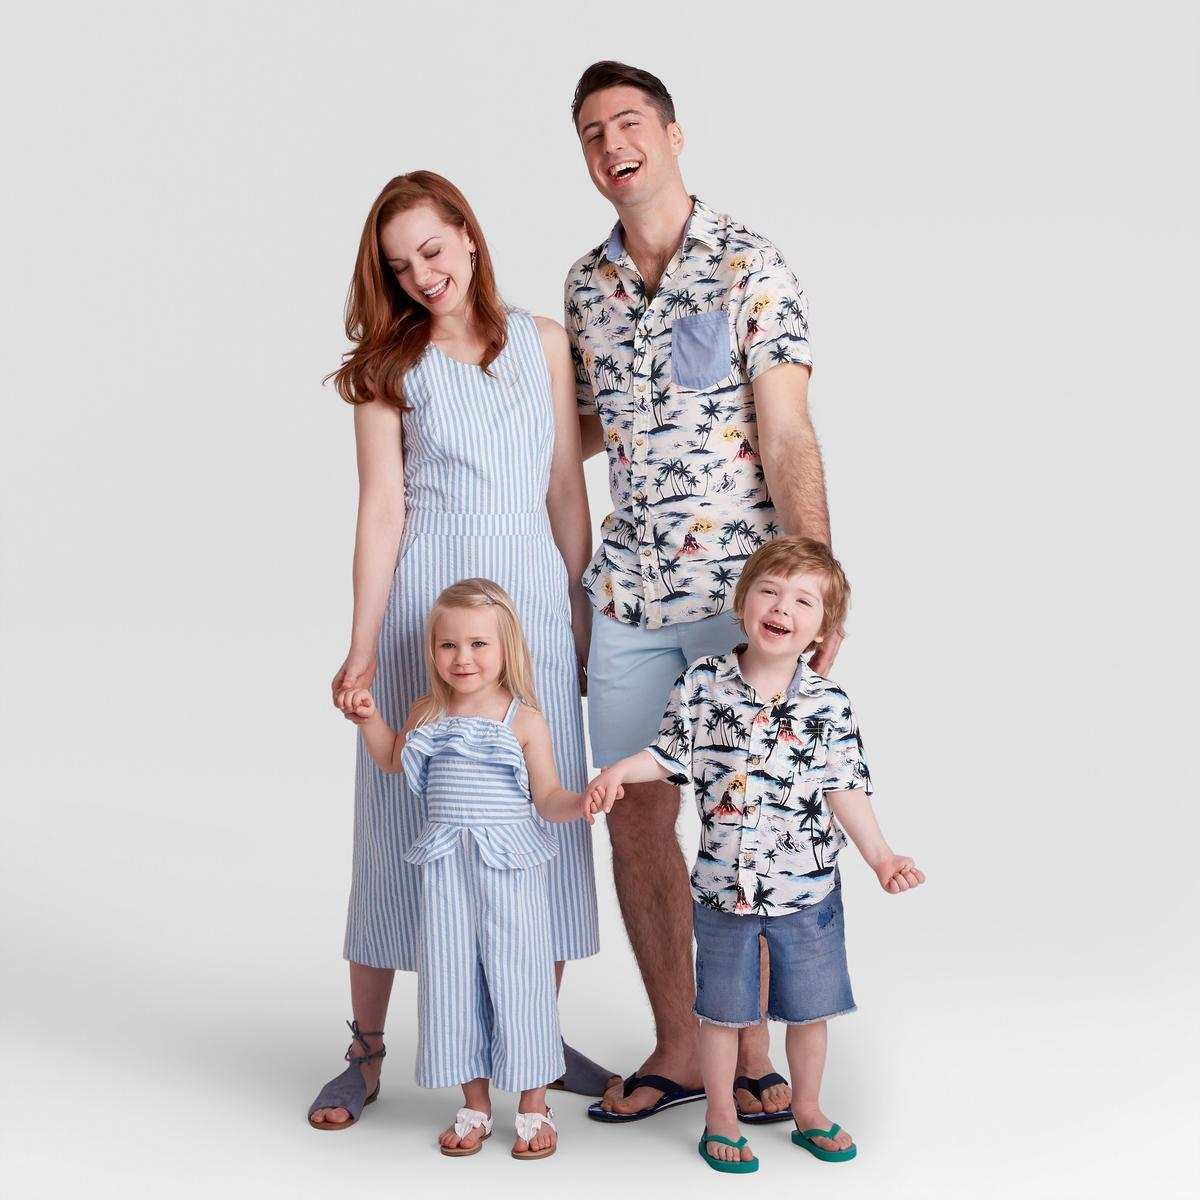 Target's Matching Family Collection